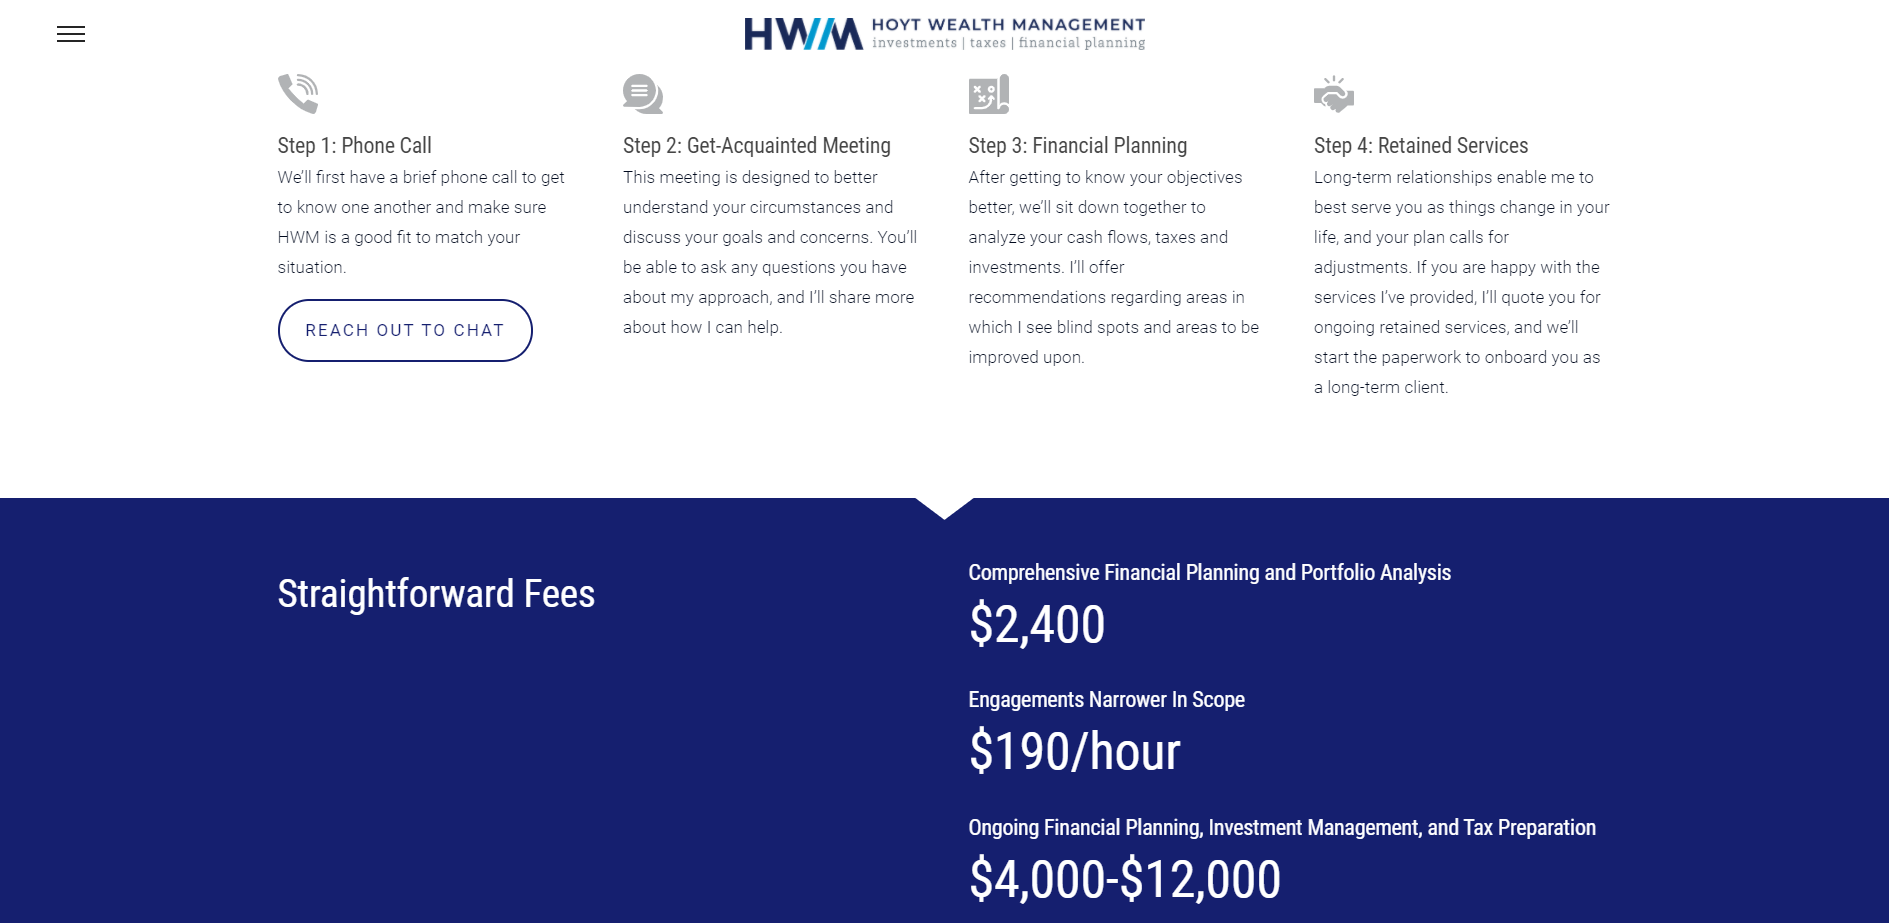 Hoyt Wealth Management Pricing Page